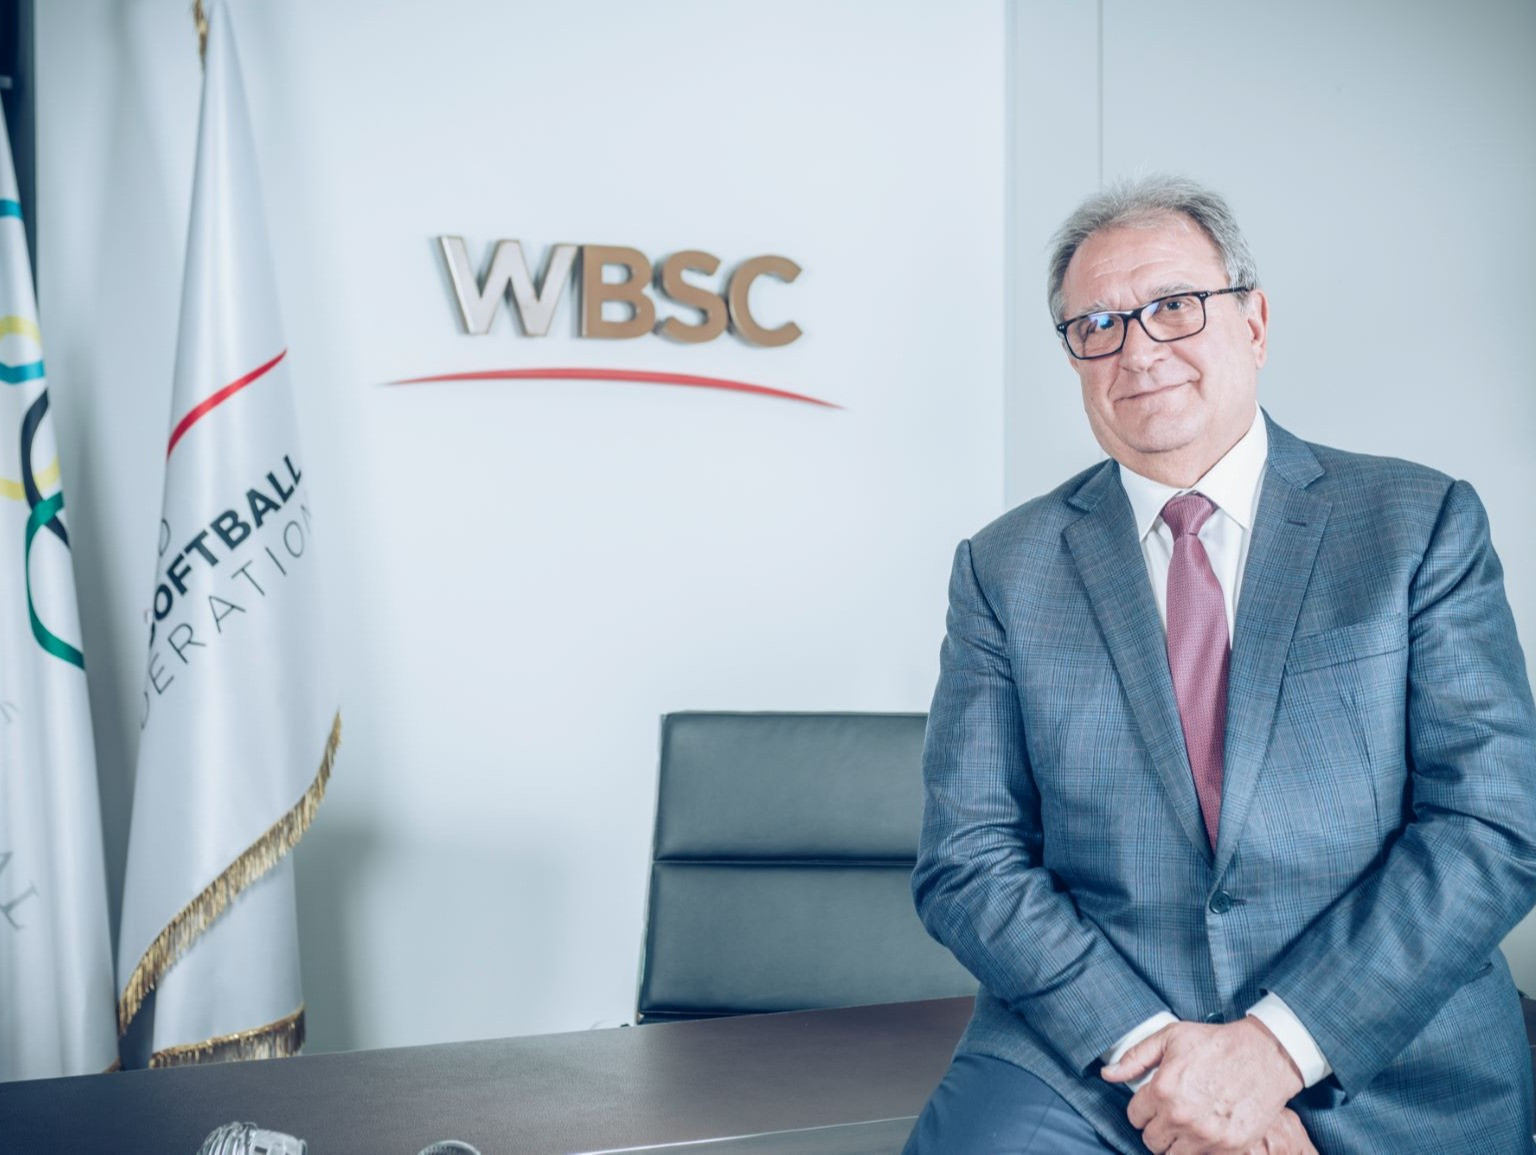 WBSC President hails 2019 as biggest year in history of international baseball and softball